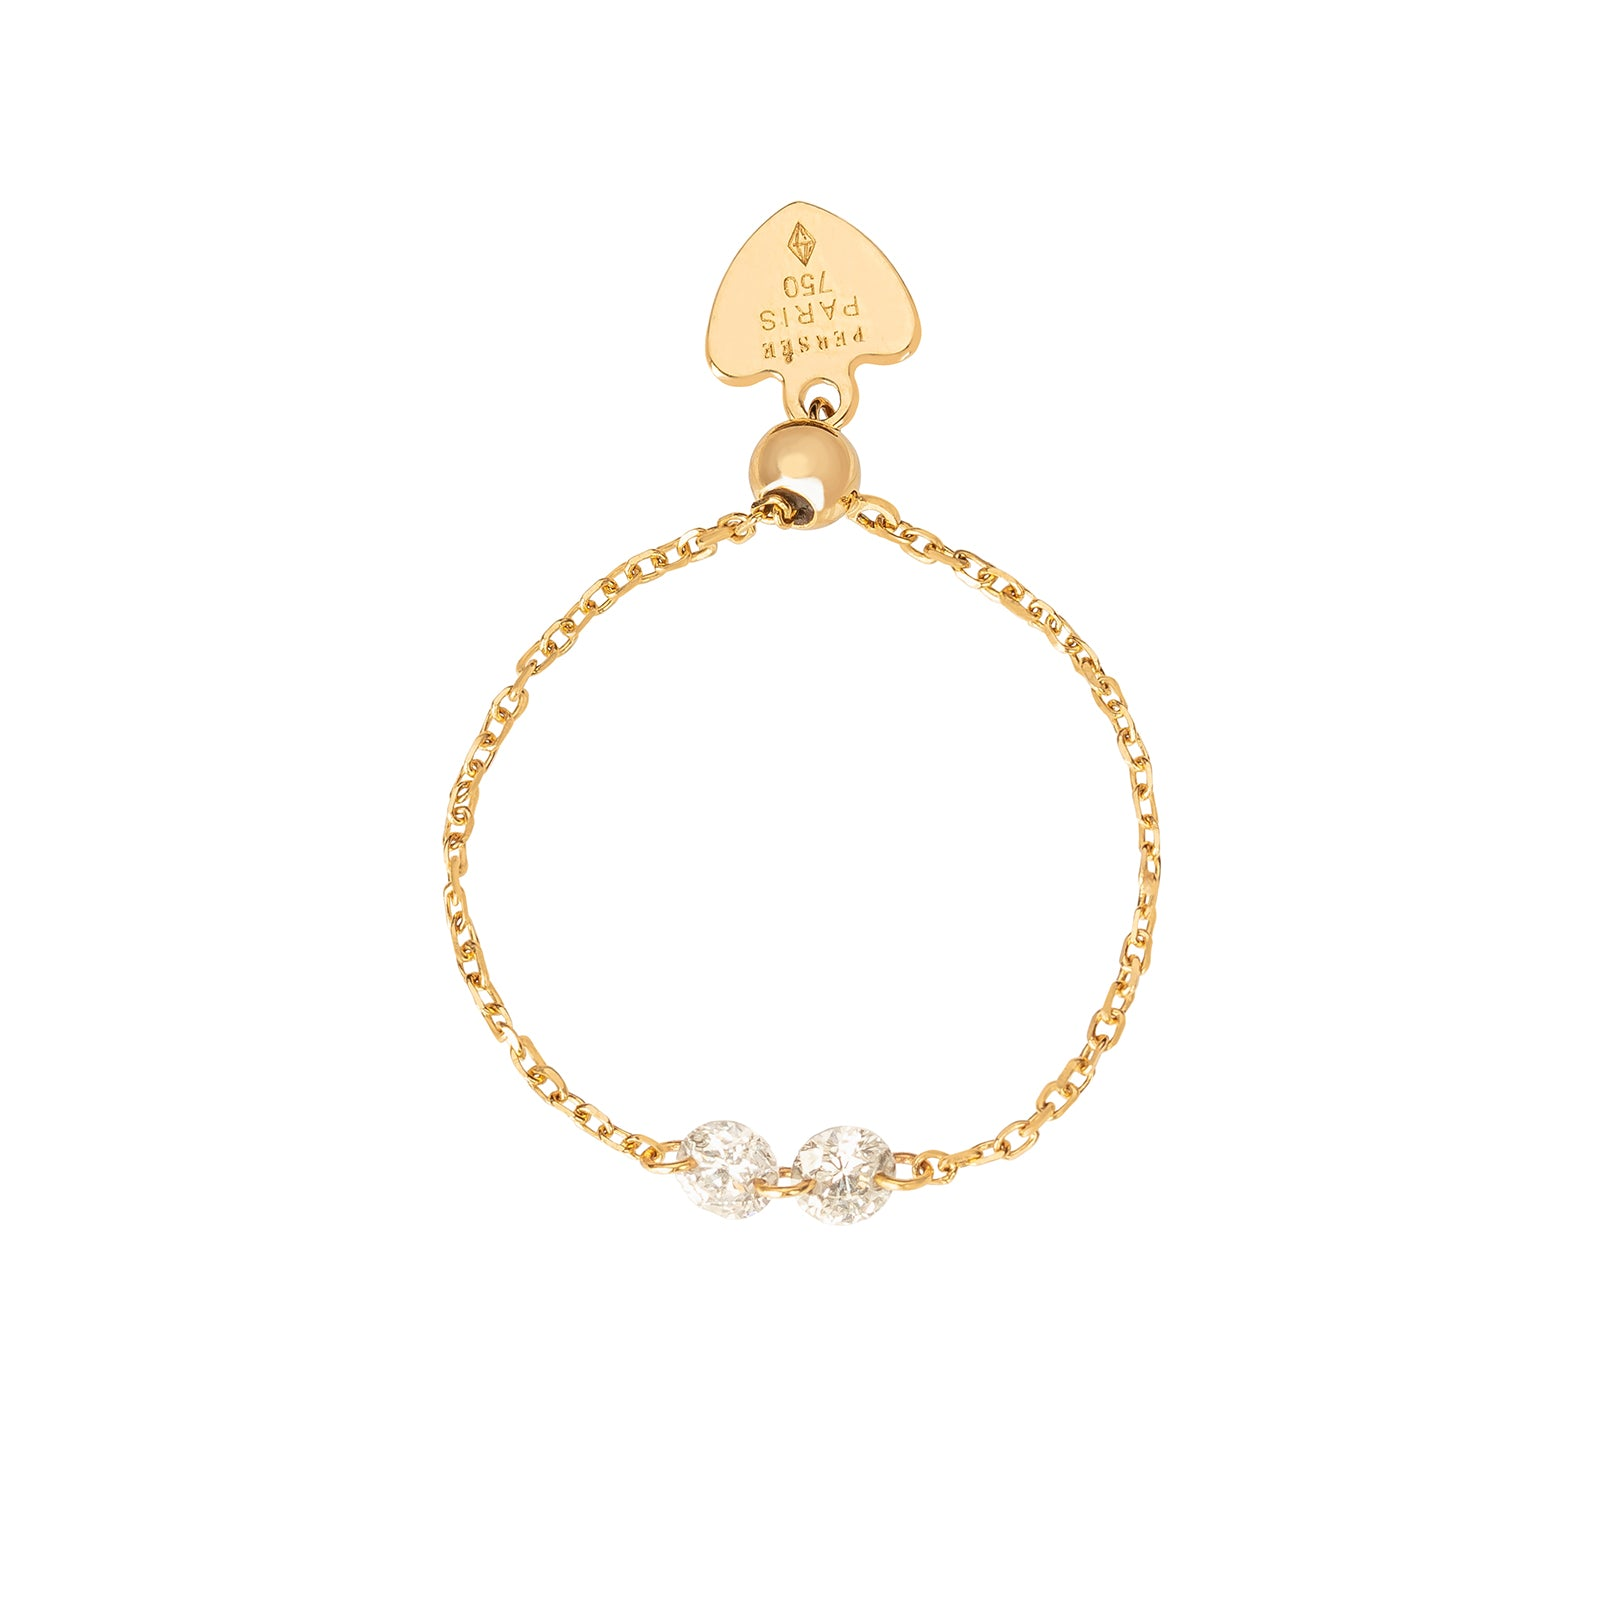 Persée Paris Adjustable Diamond Chain Ring - Yellow Gold - Rings - Broken English Jewelry